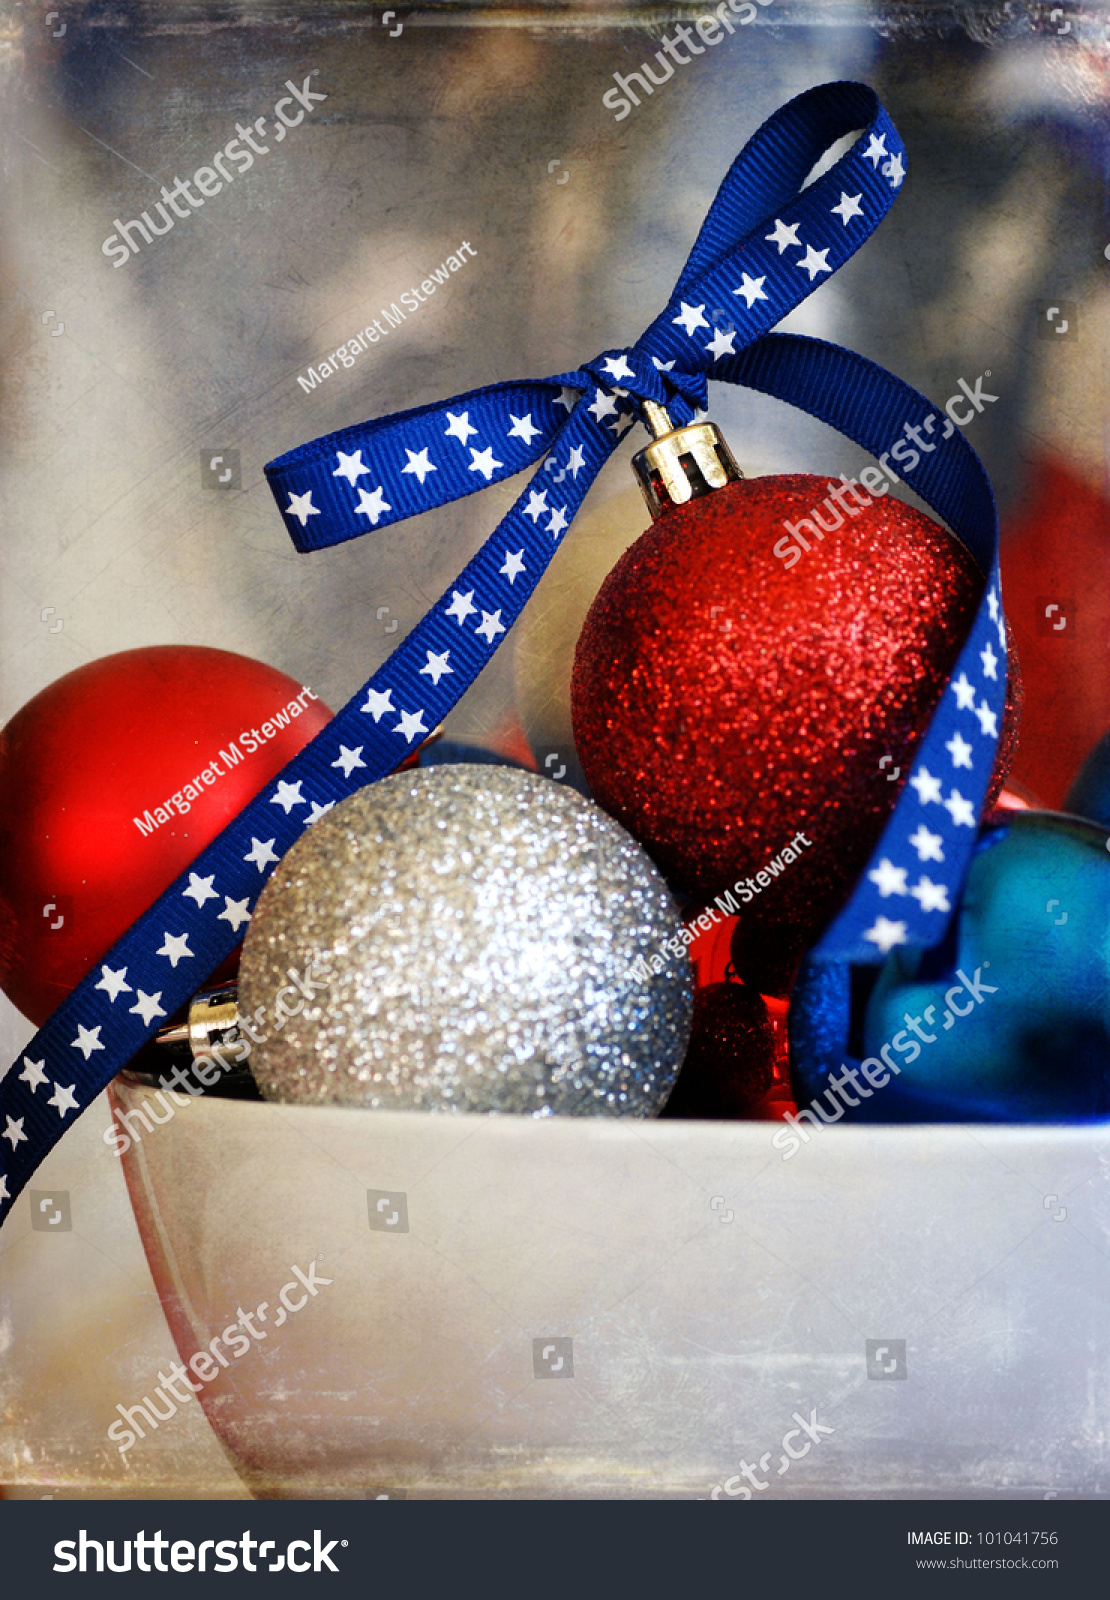 Red white and blue christmas ornaments - Save To A Lightbox